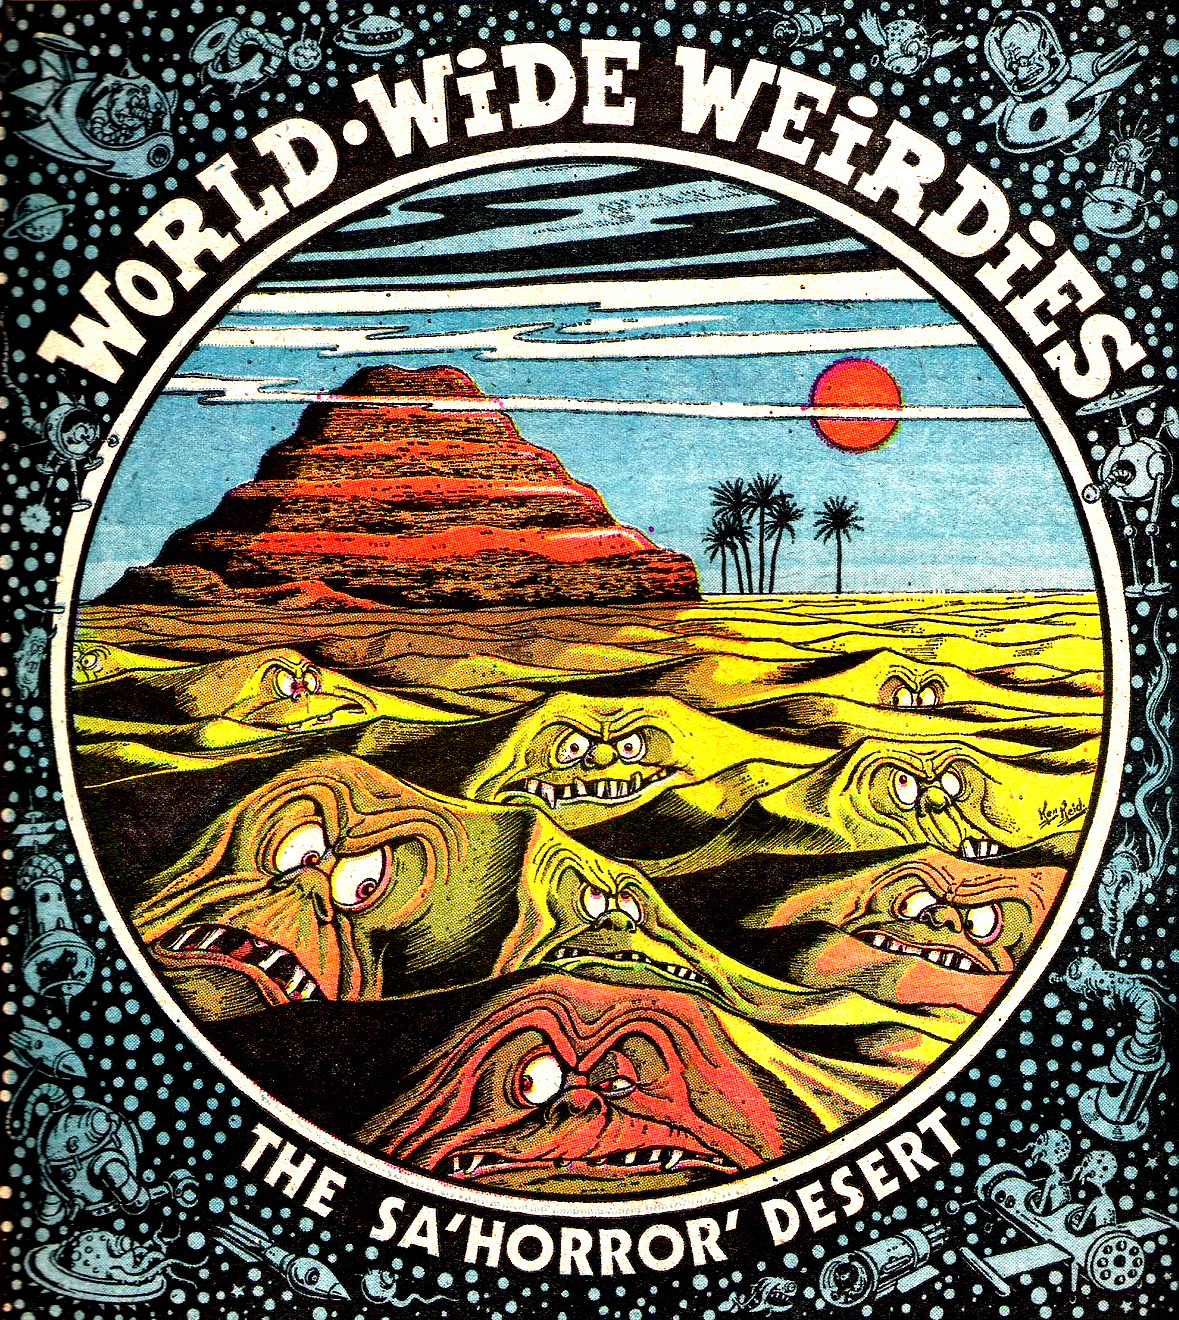 Ken Reid - World Wide Weirdies 39